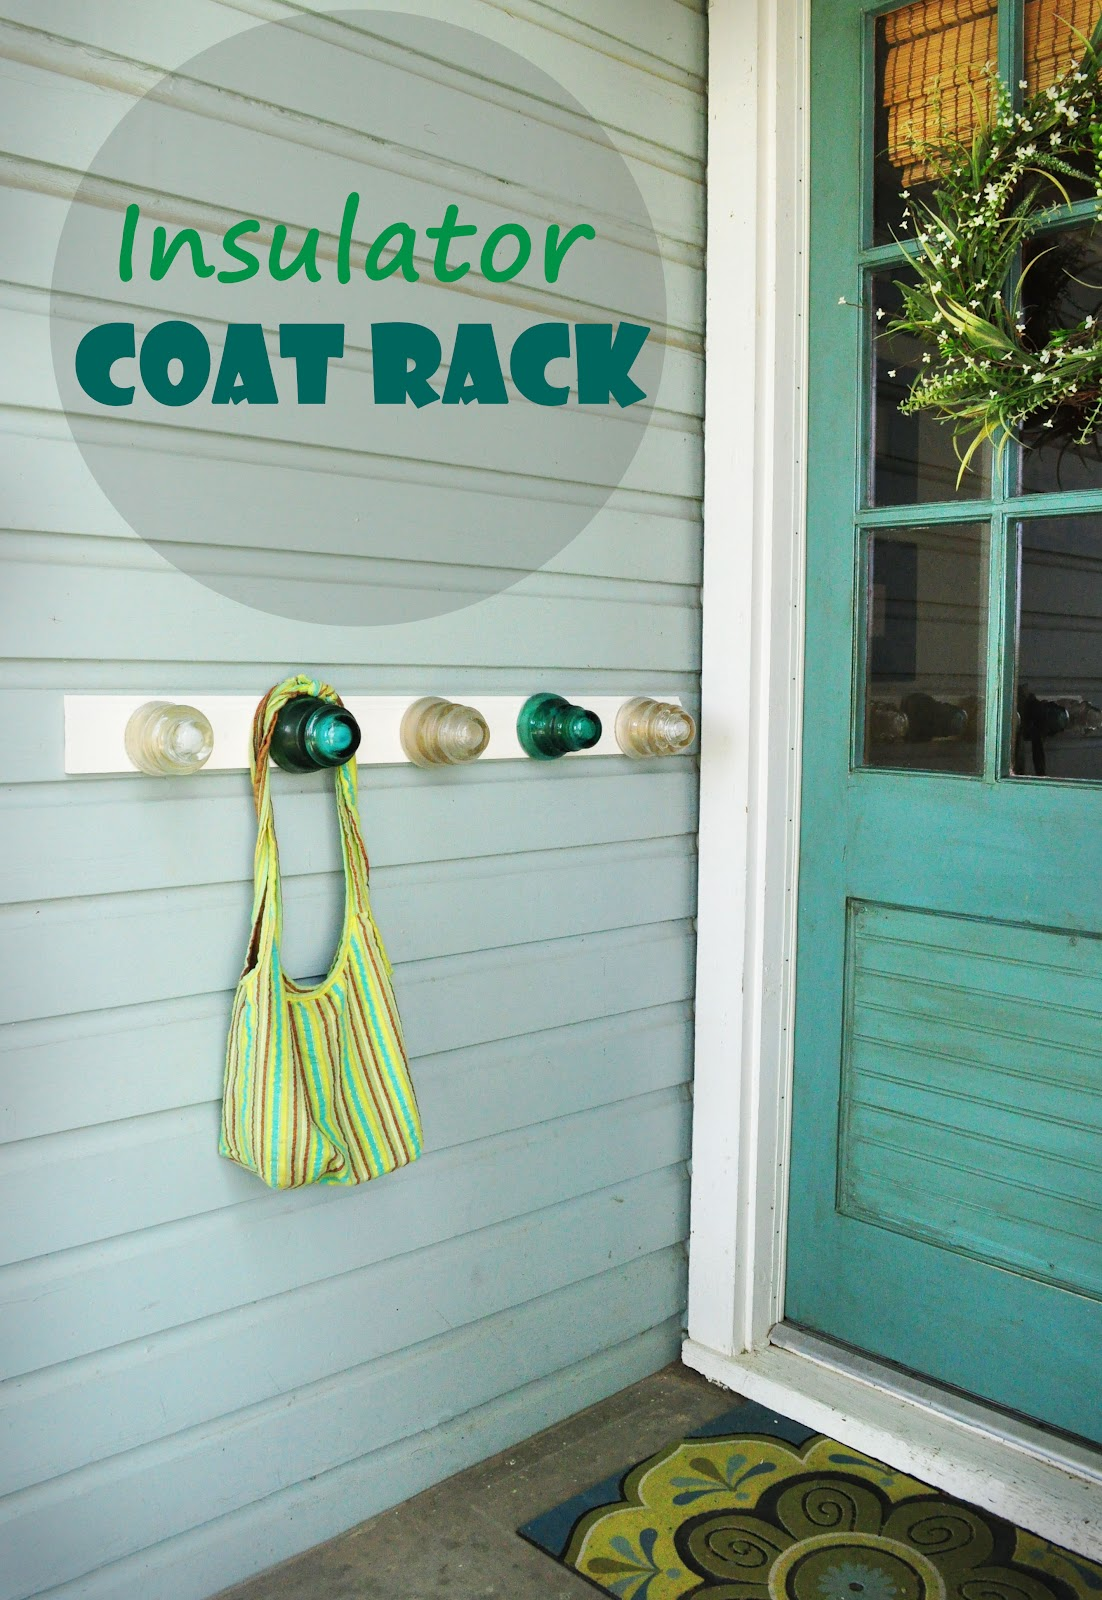 Insulator coat rack creatively living blog for Glass insulators crafts